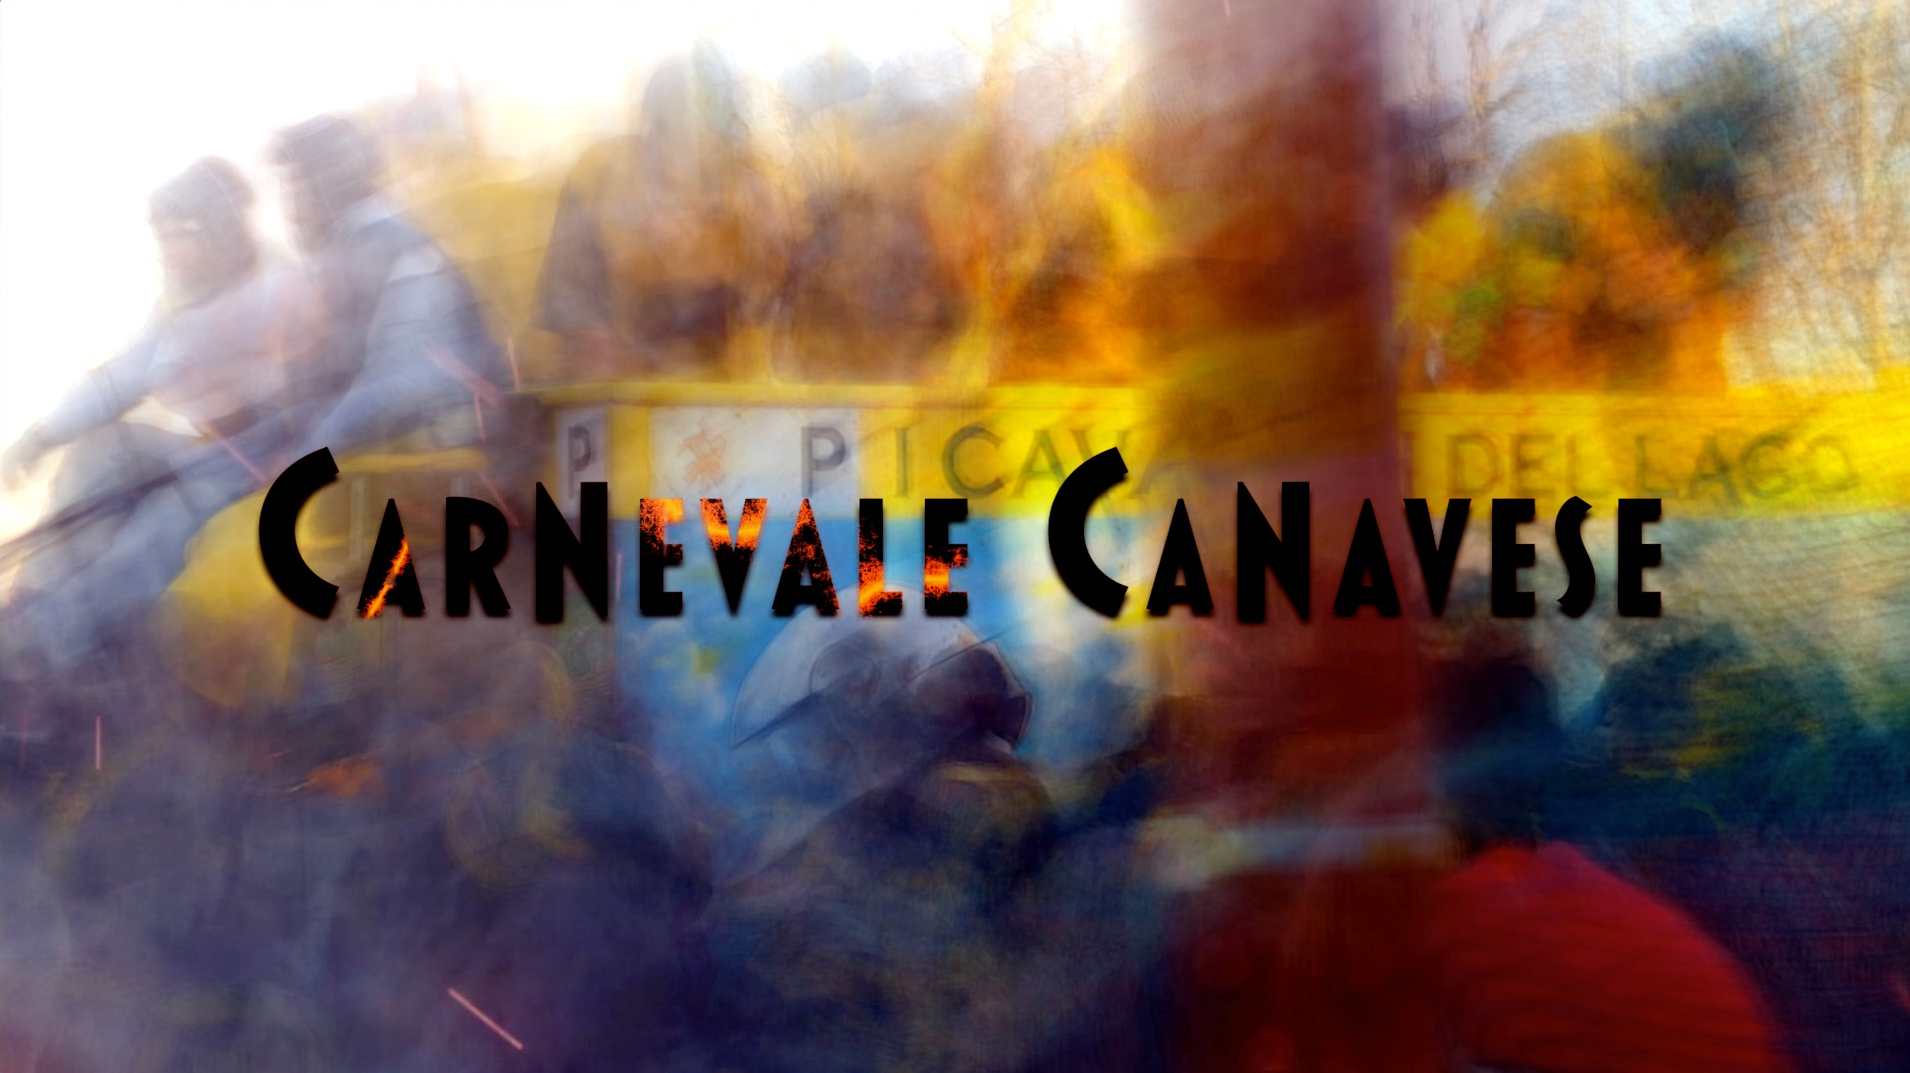 Carnevale_Canavese_still